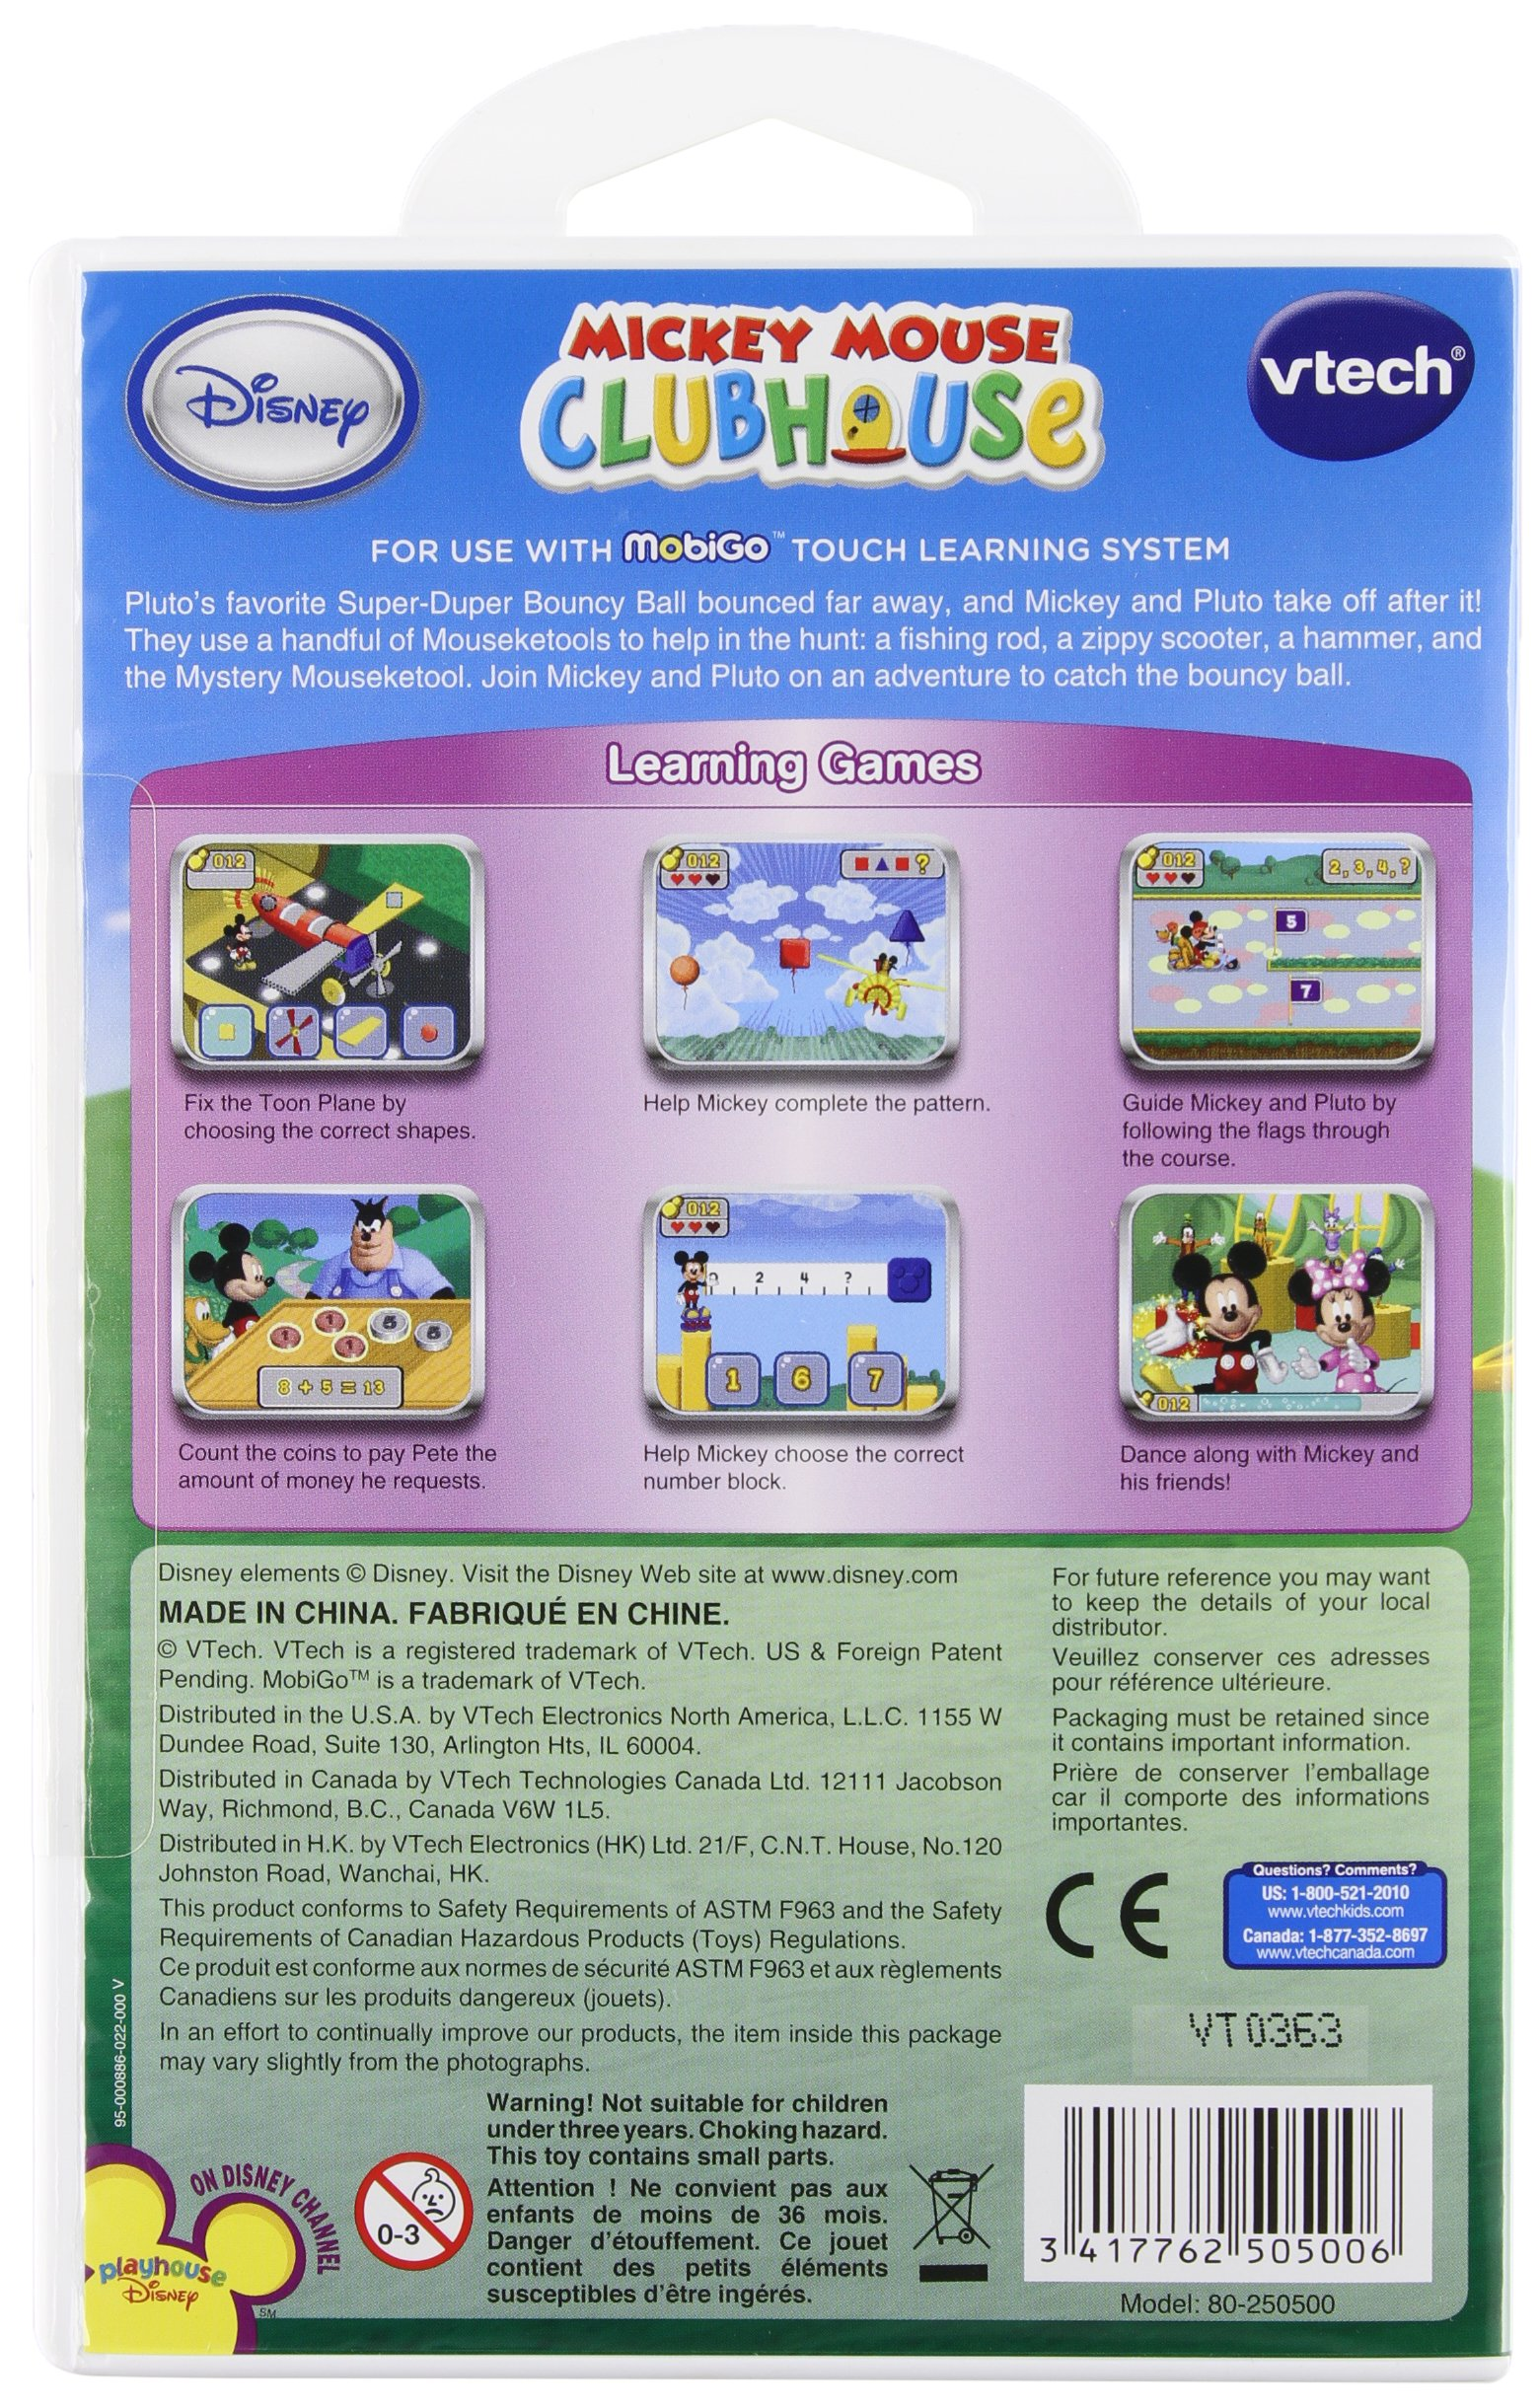 VTech - MobiGo Software - Mickey Mouse Clubhouse by VTech (Image #2)